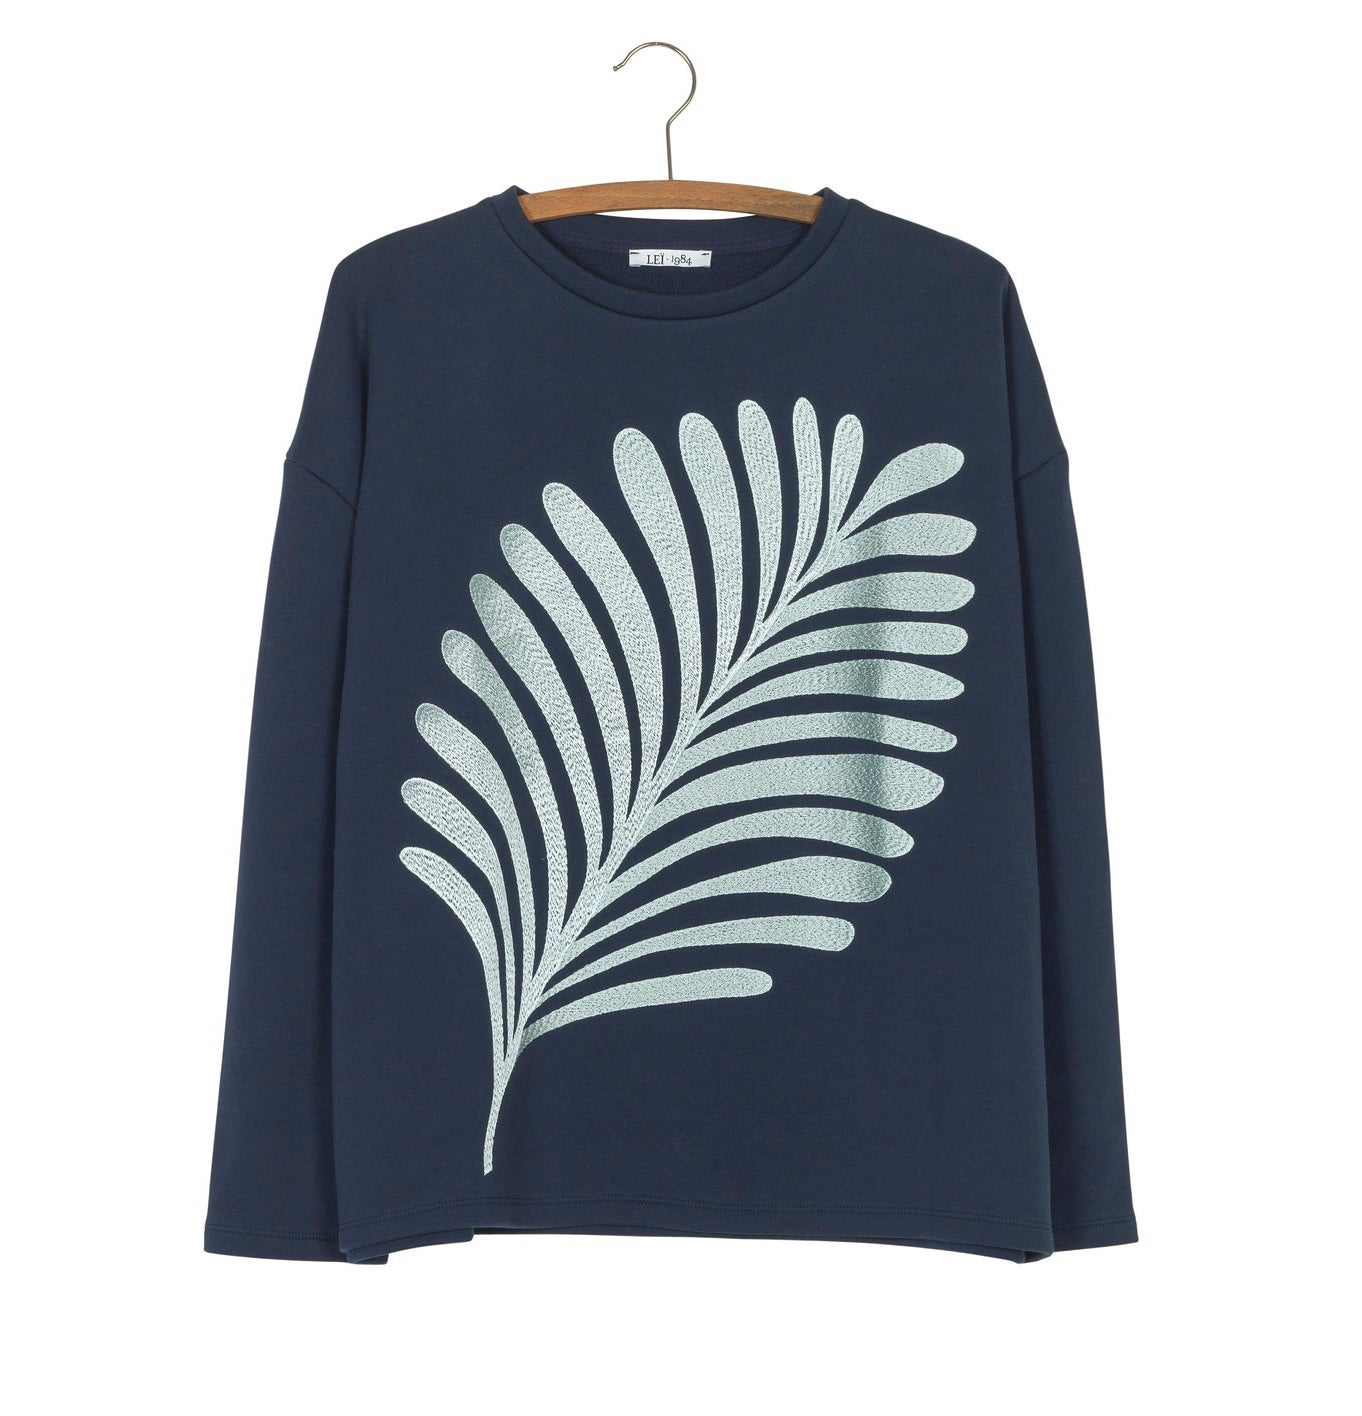 Image of Sweat brodé MATISSE 120€ -60%